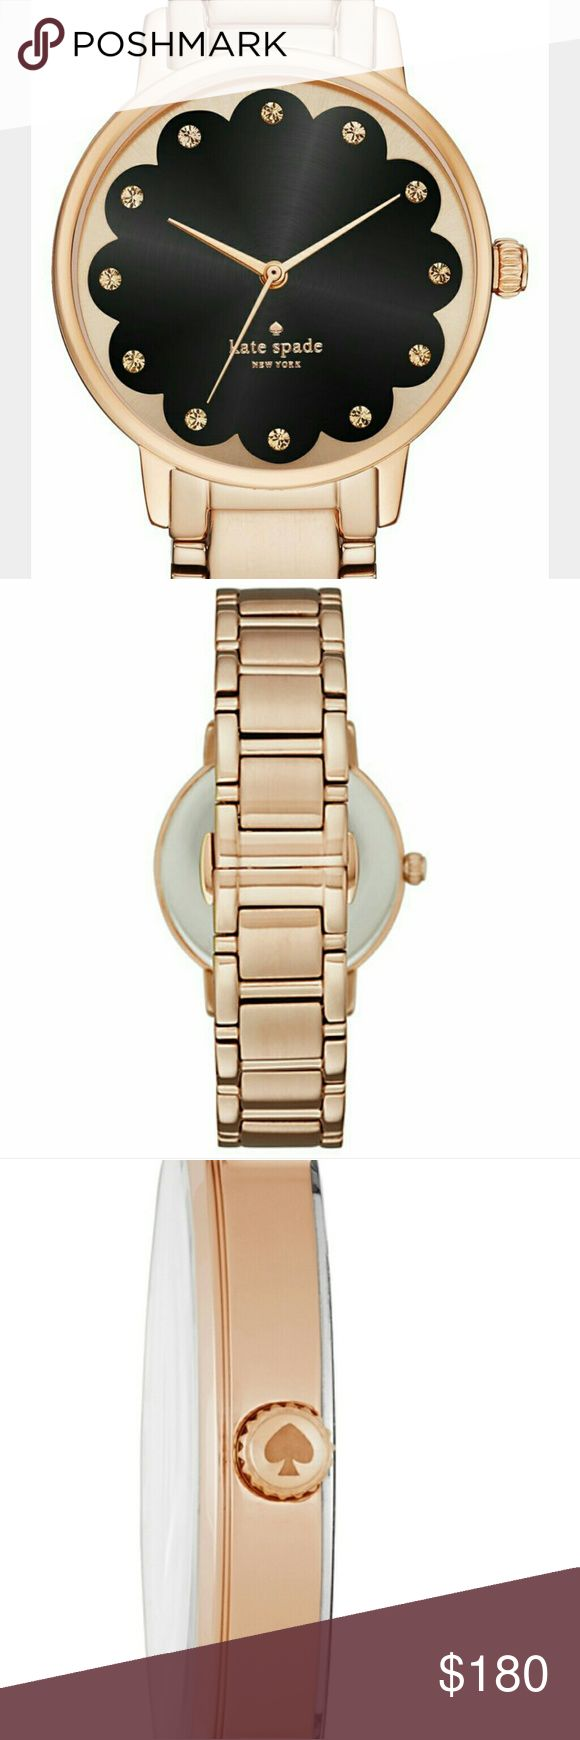 SALE Kate Spade Rose Gold Scallop Gramercy Watch A scalloped black dial gives a sweet touch to the classic rose gold-tone kate spade new york gramercy watch, perfect for wearing alone or layering for a more-is-more look!   Case thickness: 8 mm; case diameter: 34 mm; band width: 16 mm; band circumference: 175 mm (+/- 5 mm)  Band material: stainless steel; movement: three-hand; water resistance: 3 atm Analog-quartz Movement Kate Spade Accessories Watches